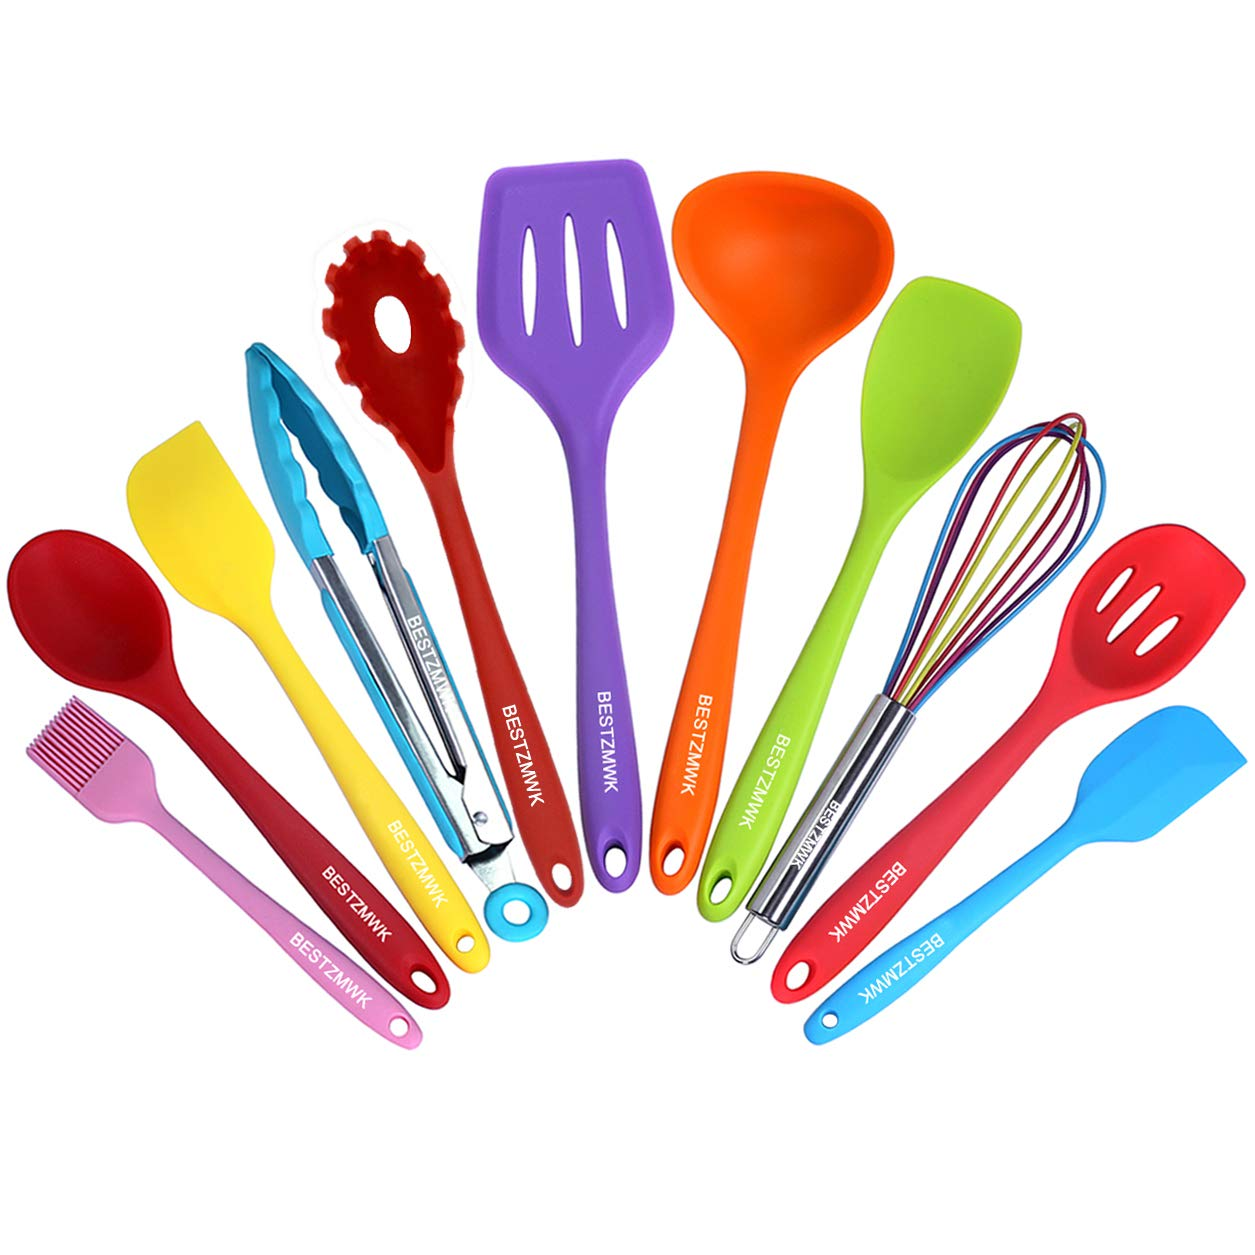 Kitchen Utensil Set - 11 Cooking Utensils - Colorful Silicone Kitchen Utensils - Nonstick Cookware with Spatula Set - Colored Best Kitchen Tools Kitchen Gadgets (Multicolor)